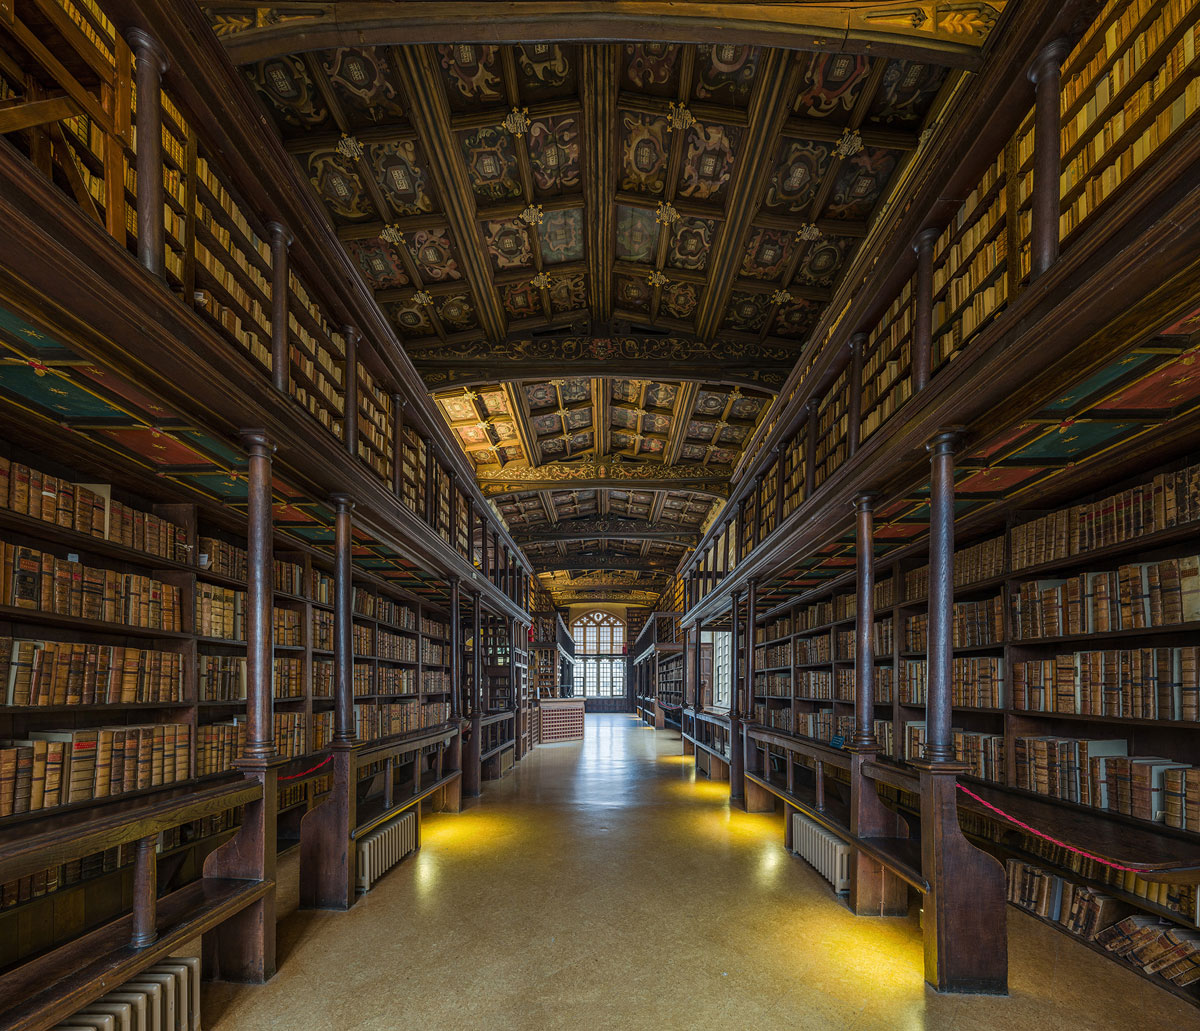 duke humfreys library bodleian libary university of oxford by david iliff 2 This Reading Room at the University of Oxford is One of the Oldest in Europe